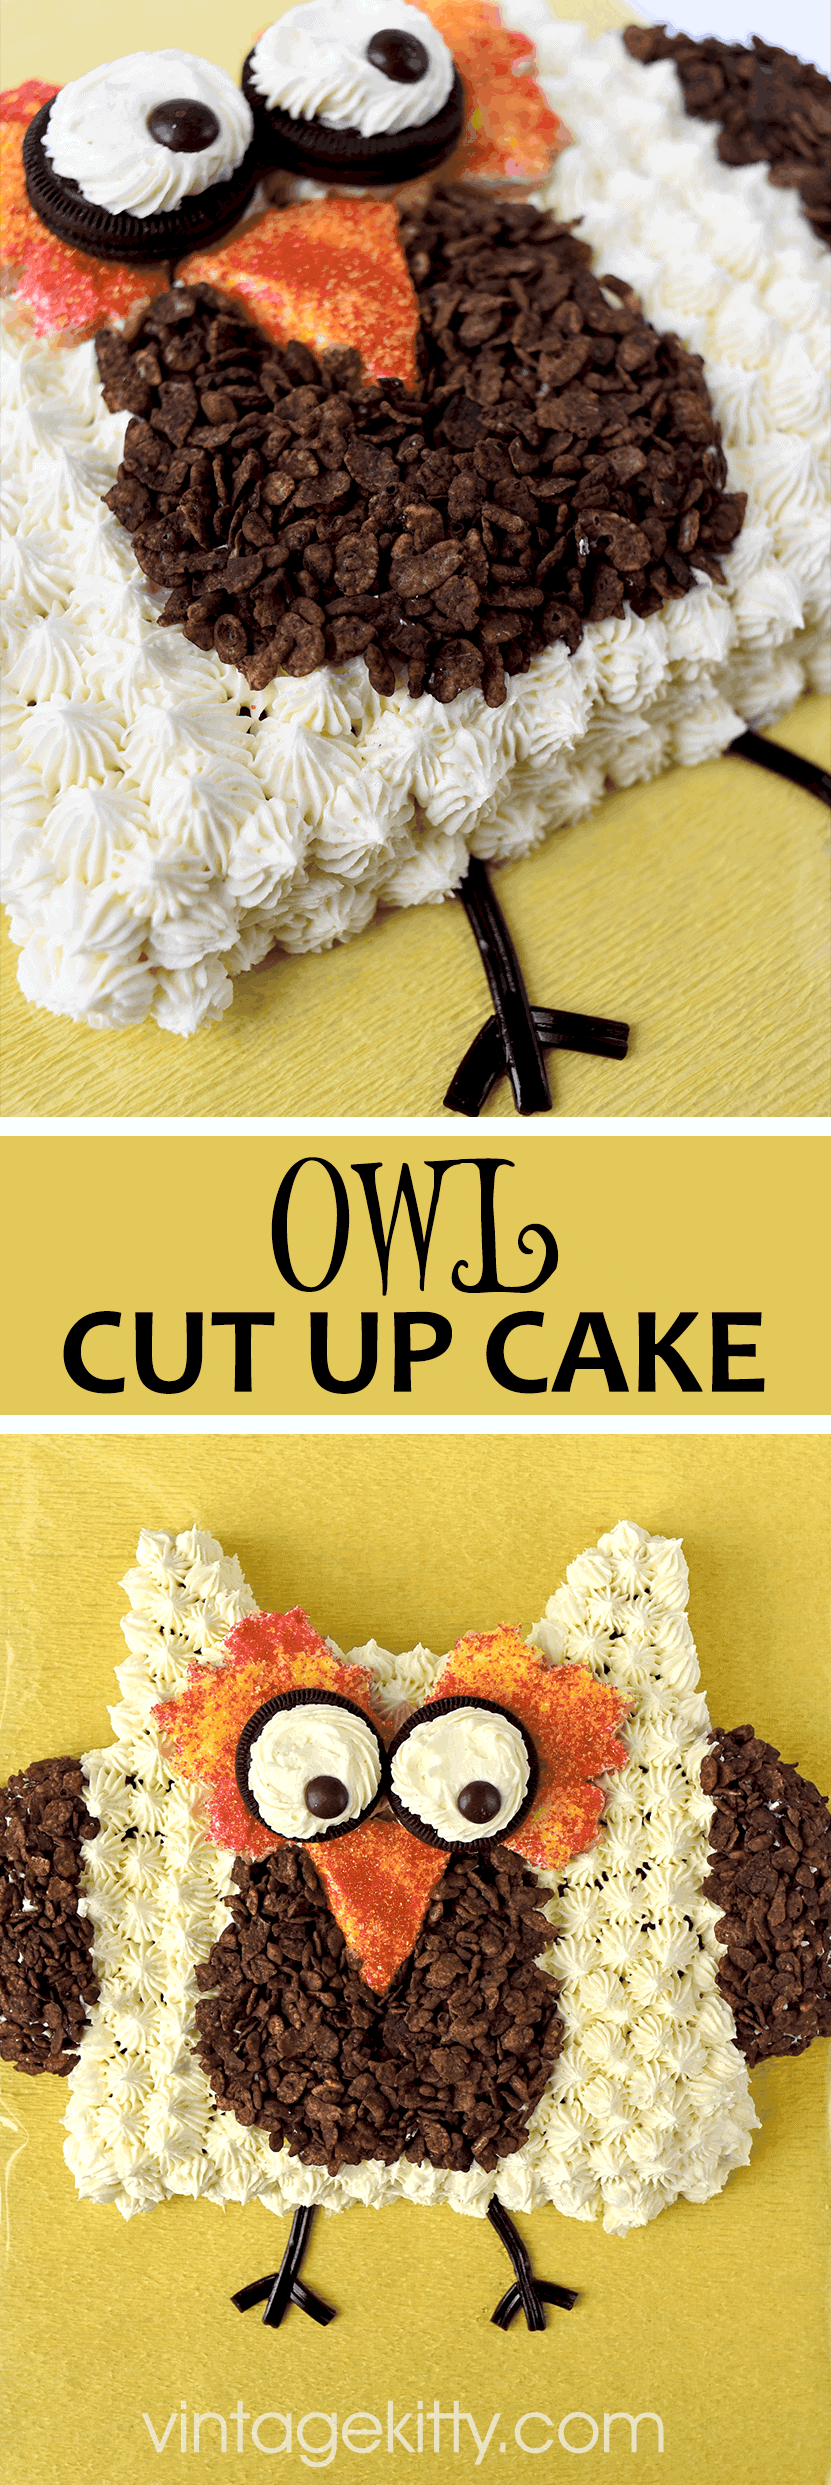 Owl Cut Up Cake Pin - Owl Cut Up Cake